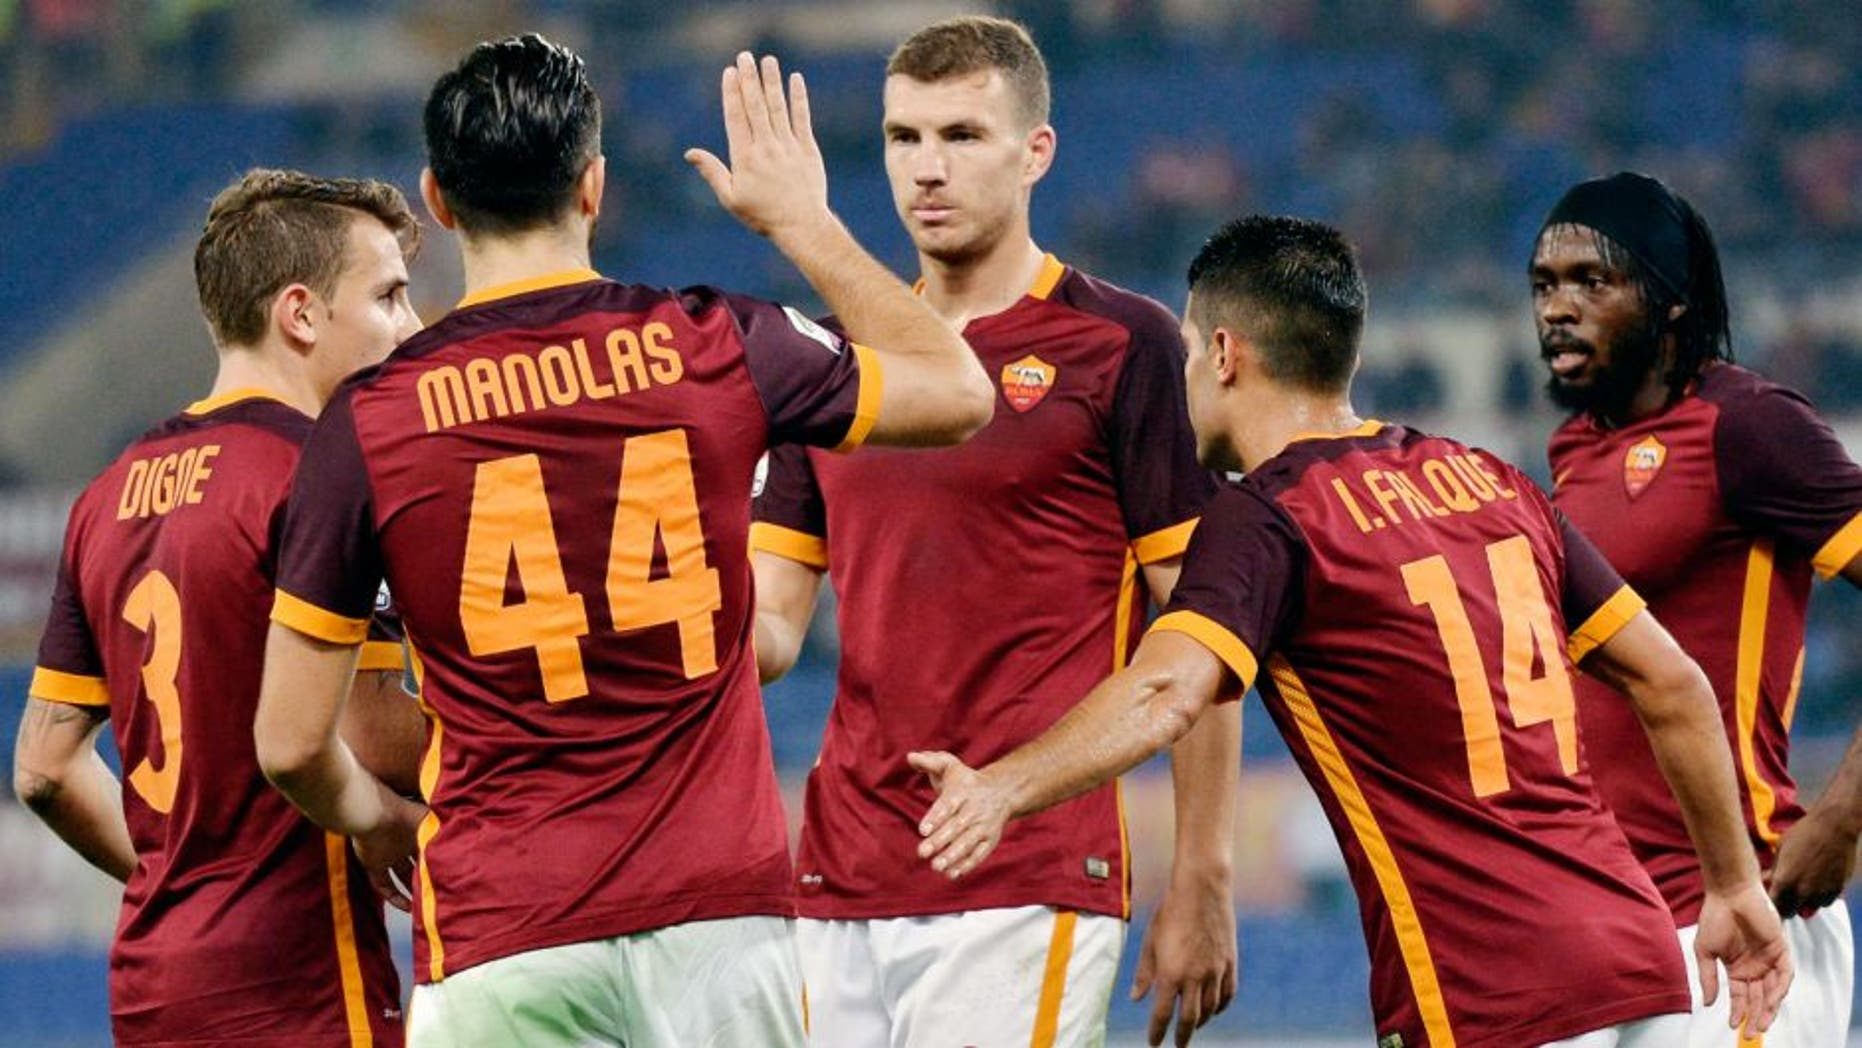 ROME, ITALY - OCTOBER 28: AS Roma players celebrate a goal during the Serie A match between AS Roma and Udinese Calcio at Stadio Olimpico on October 28, 2015 in Rome, Italy. (Photo by Luciano Rossi/AS Roma via Getty Images)